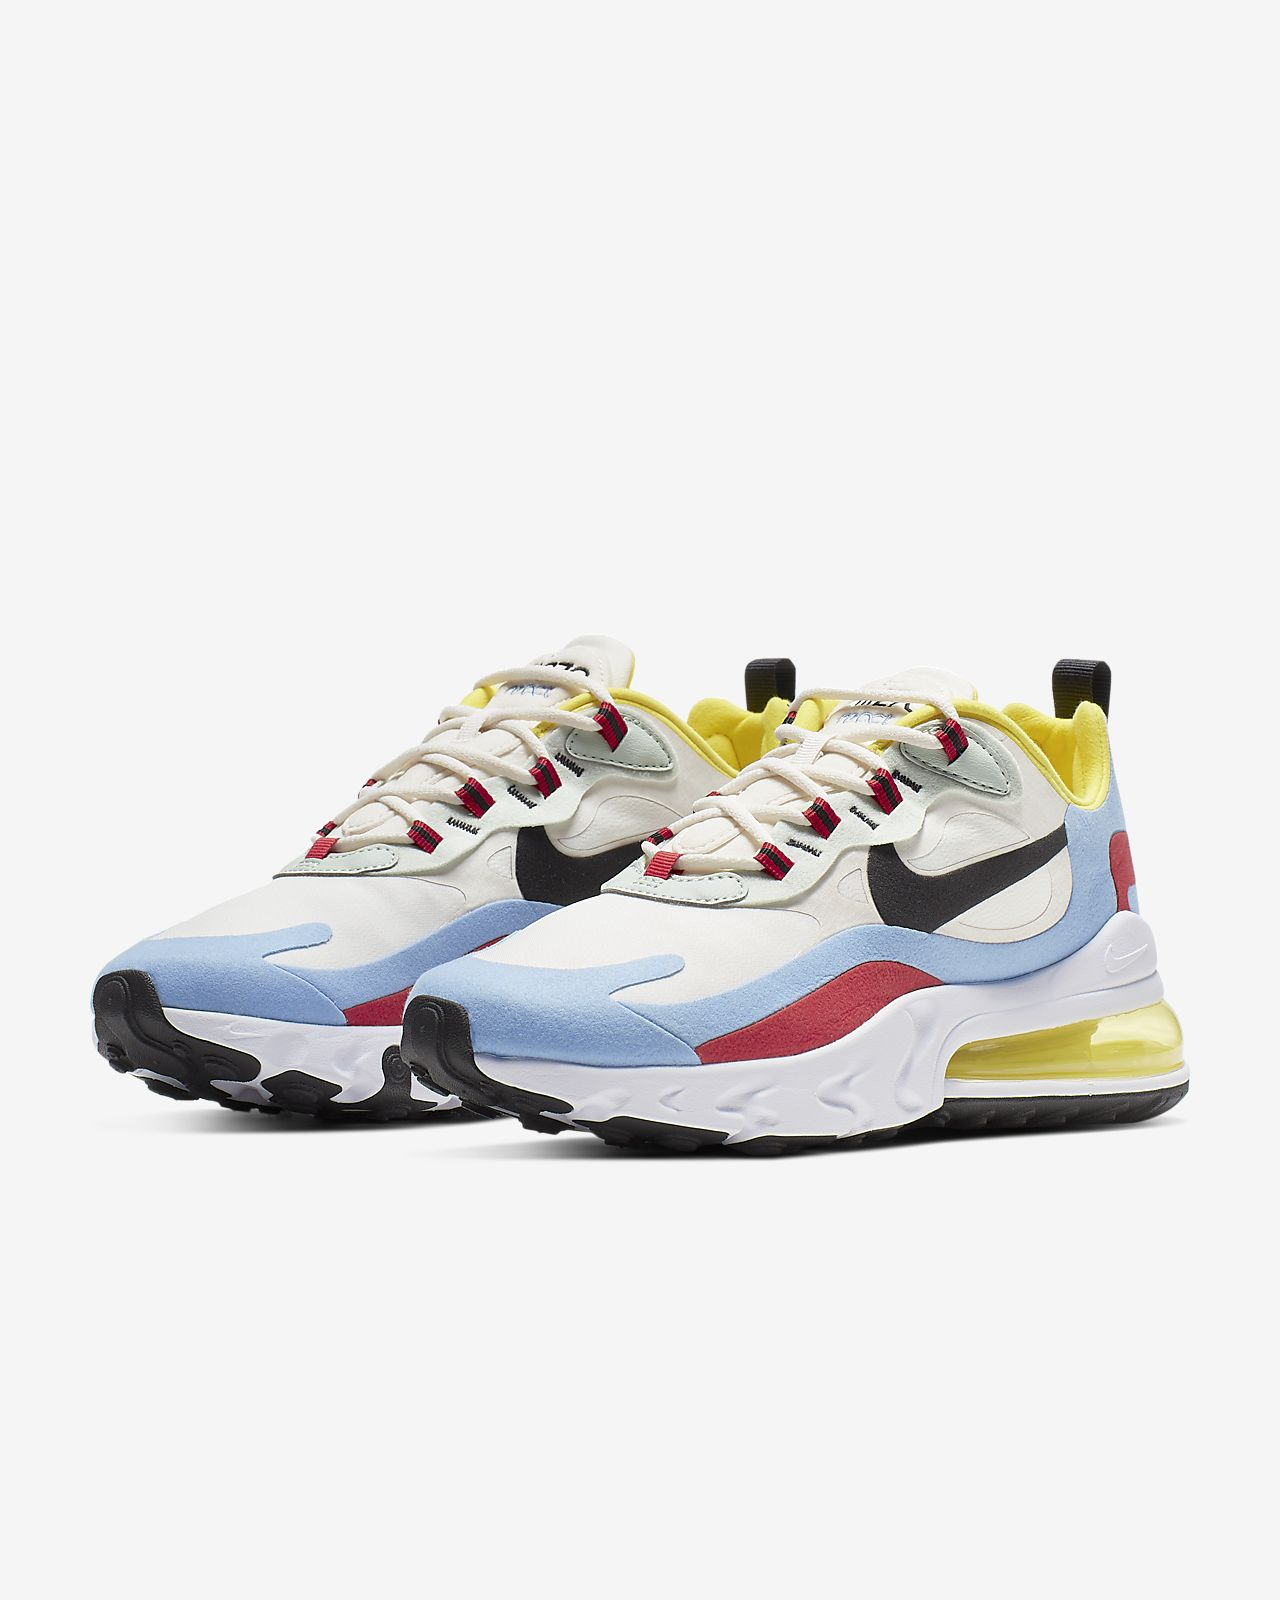 Details about Nike Air Max 270 React Summit White Blue Pink Womens Running Shoes AT6174 100